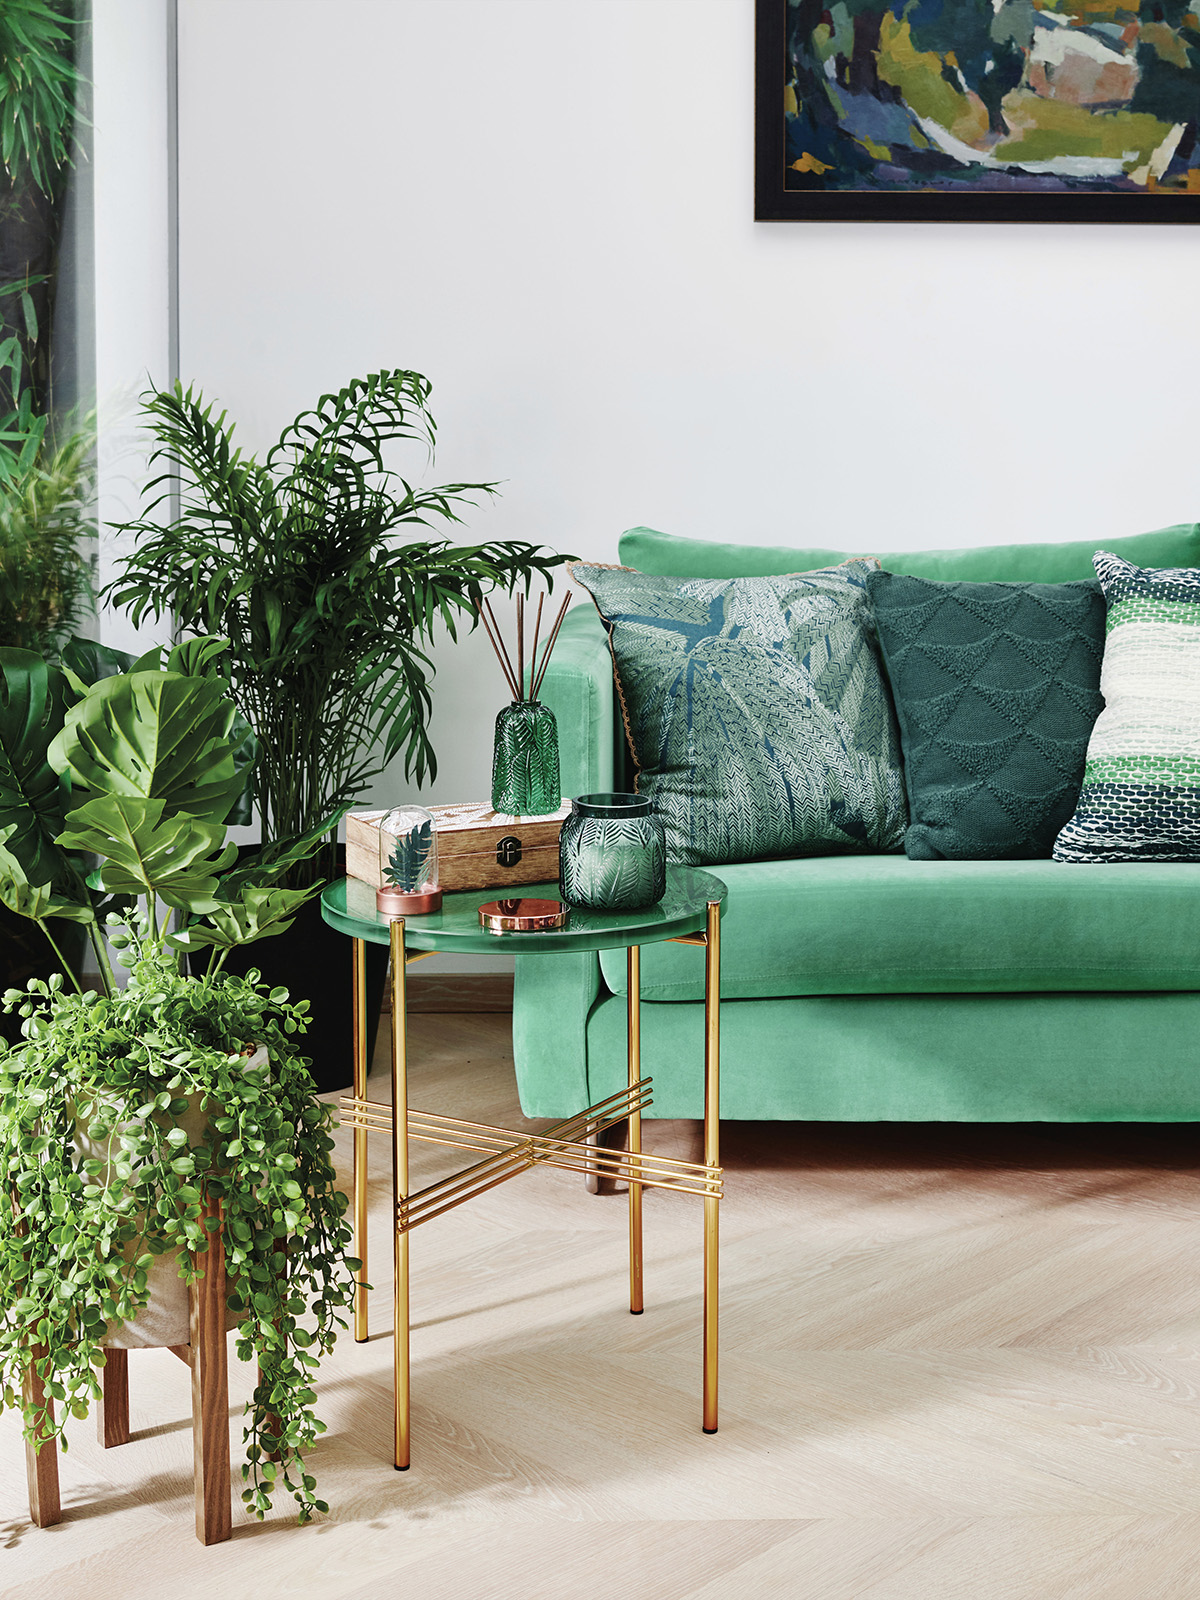 Biophilia and the benefits of introducing plants and greenery to the home are discussed by interior designer Sophie Robinson. A green velevet sofa, plenty of houseplants and light interiors all create the look. read more here. #biophilia #sophierobinson #podcast #thegreatindoors